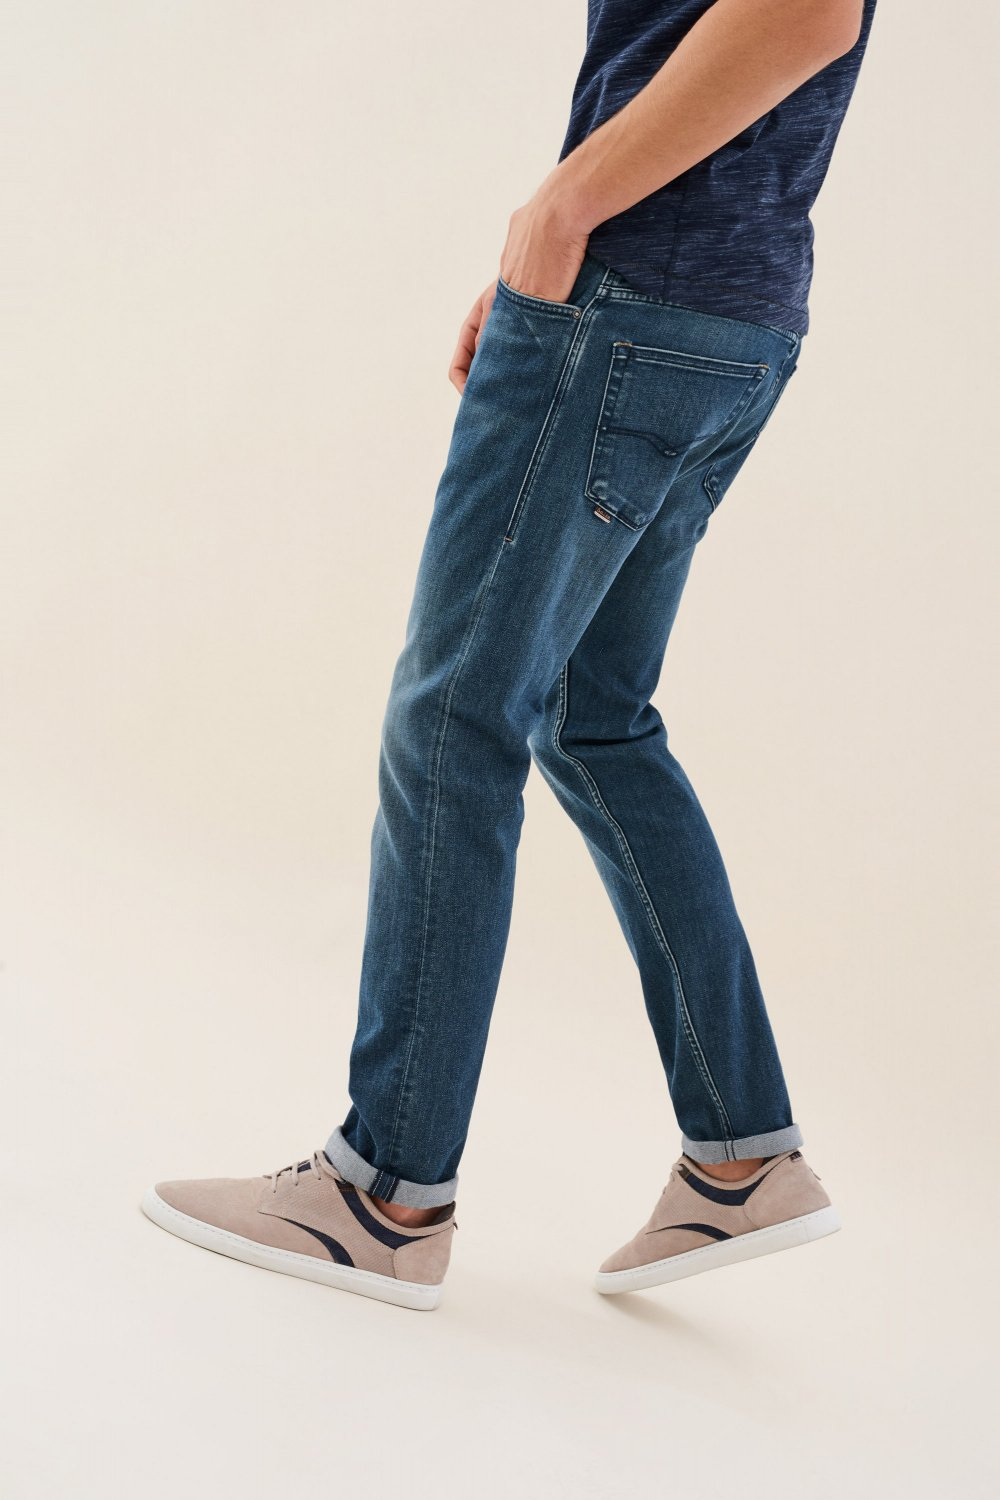 Slender slim carrot warm denim jeans - Salsa